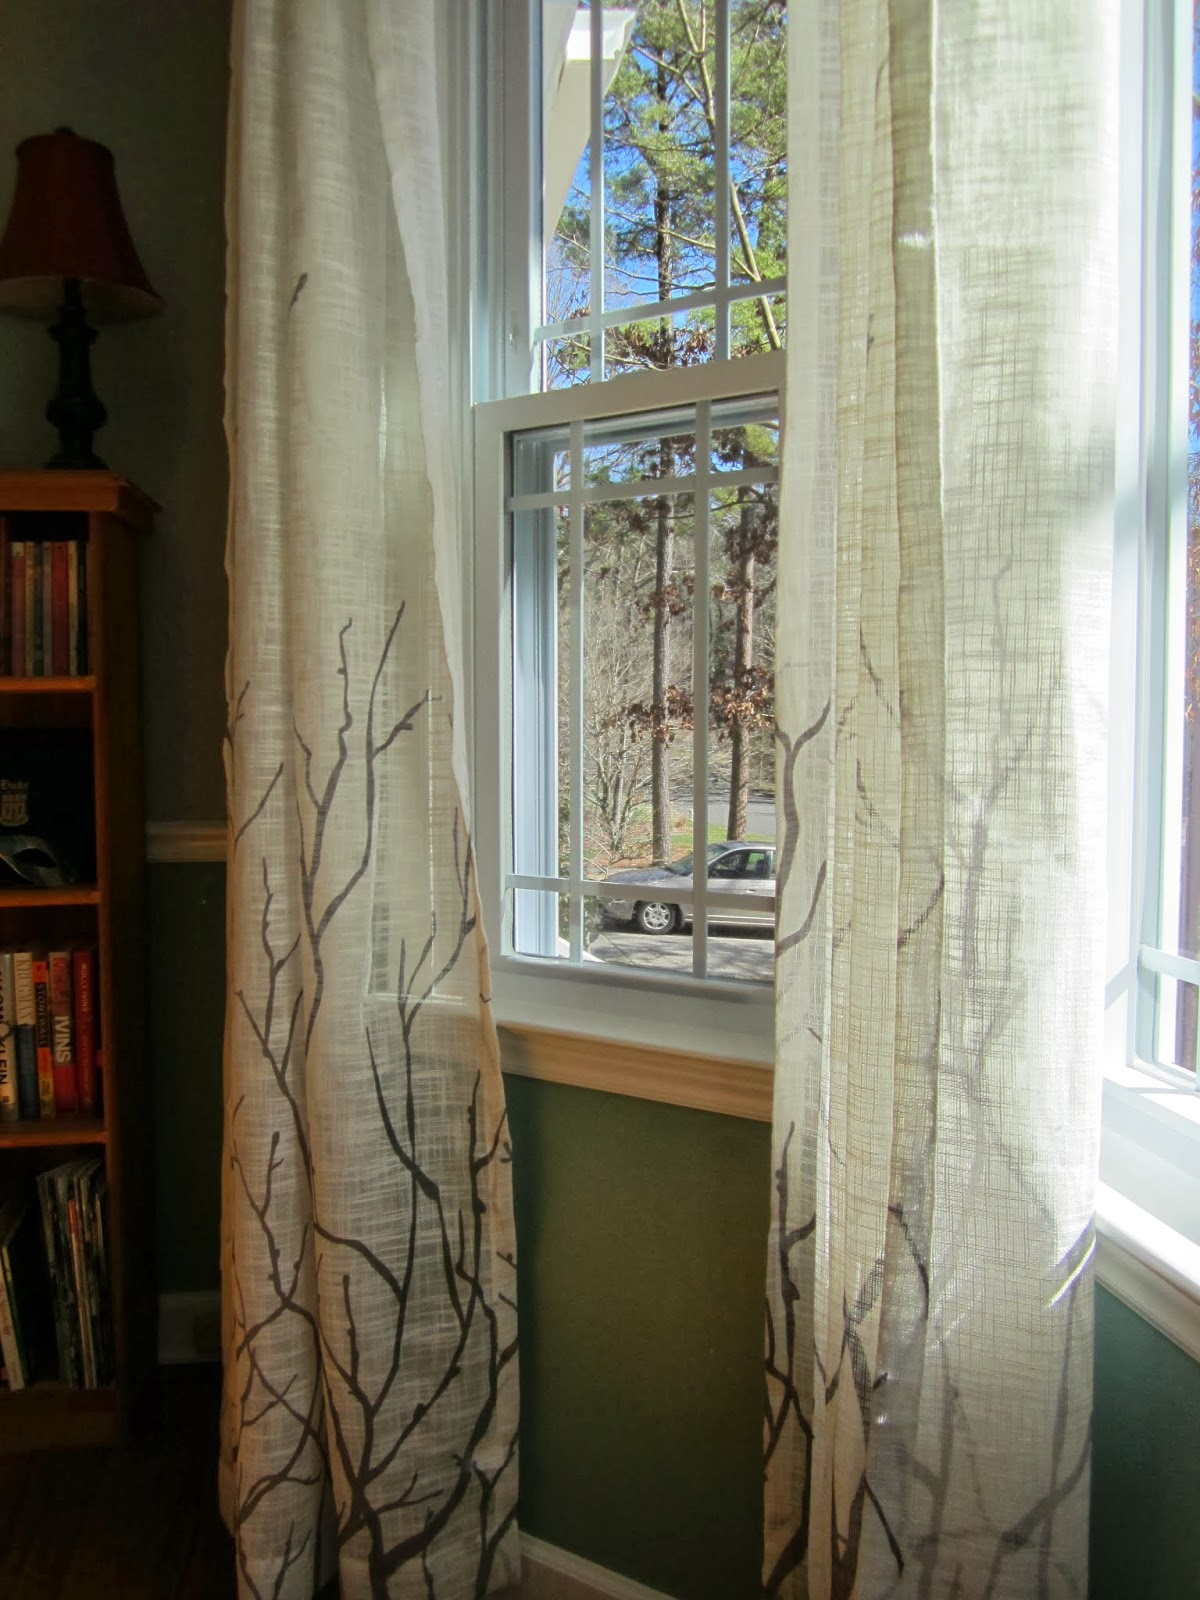 Perfect The Amberican Dream: PVC Pipes in the Bay Window XE71